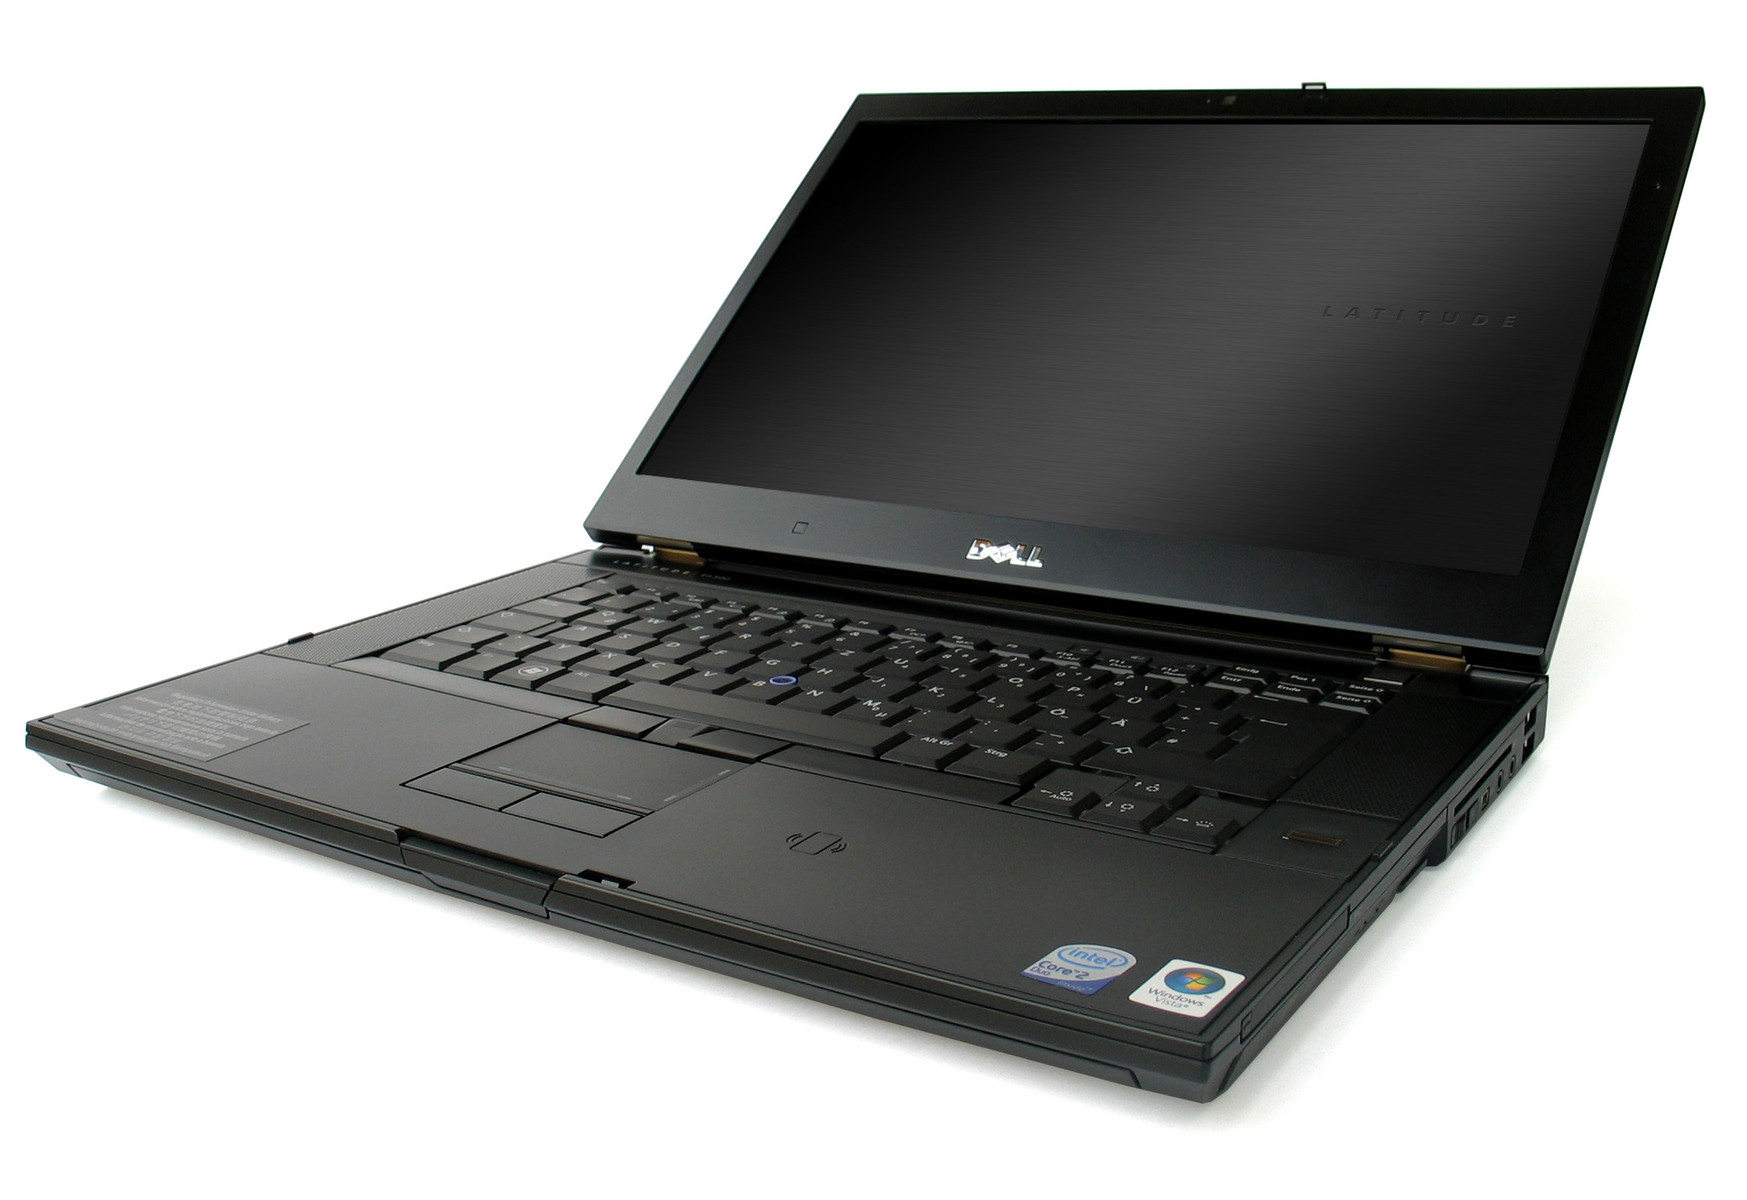 Dell Latitude E6500 - Notebookcheck.net External Reviews